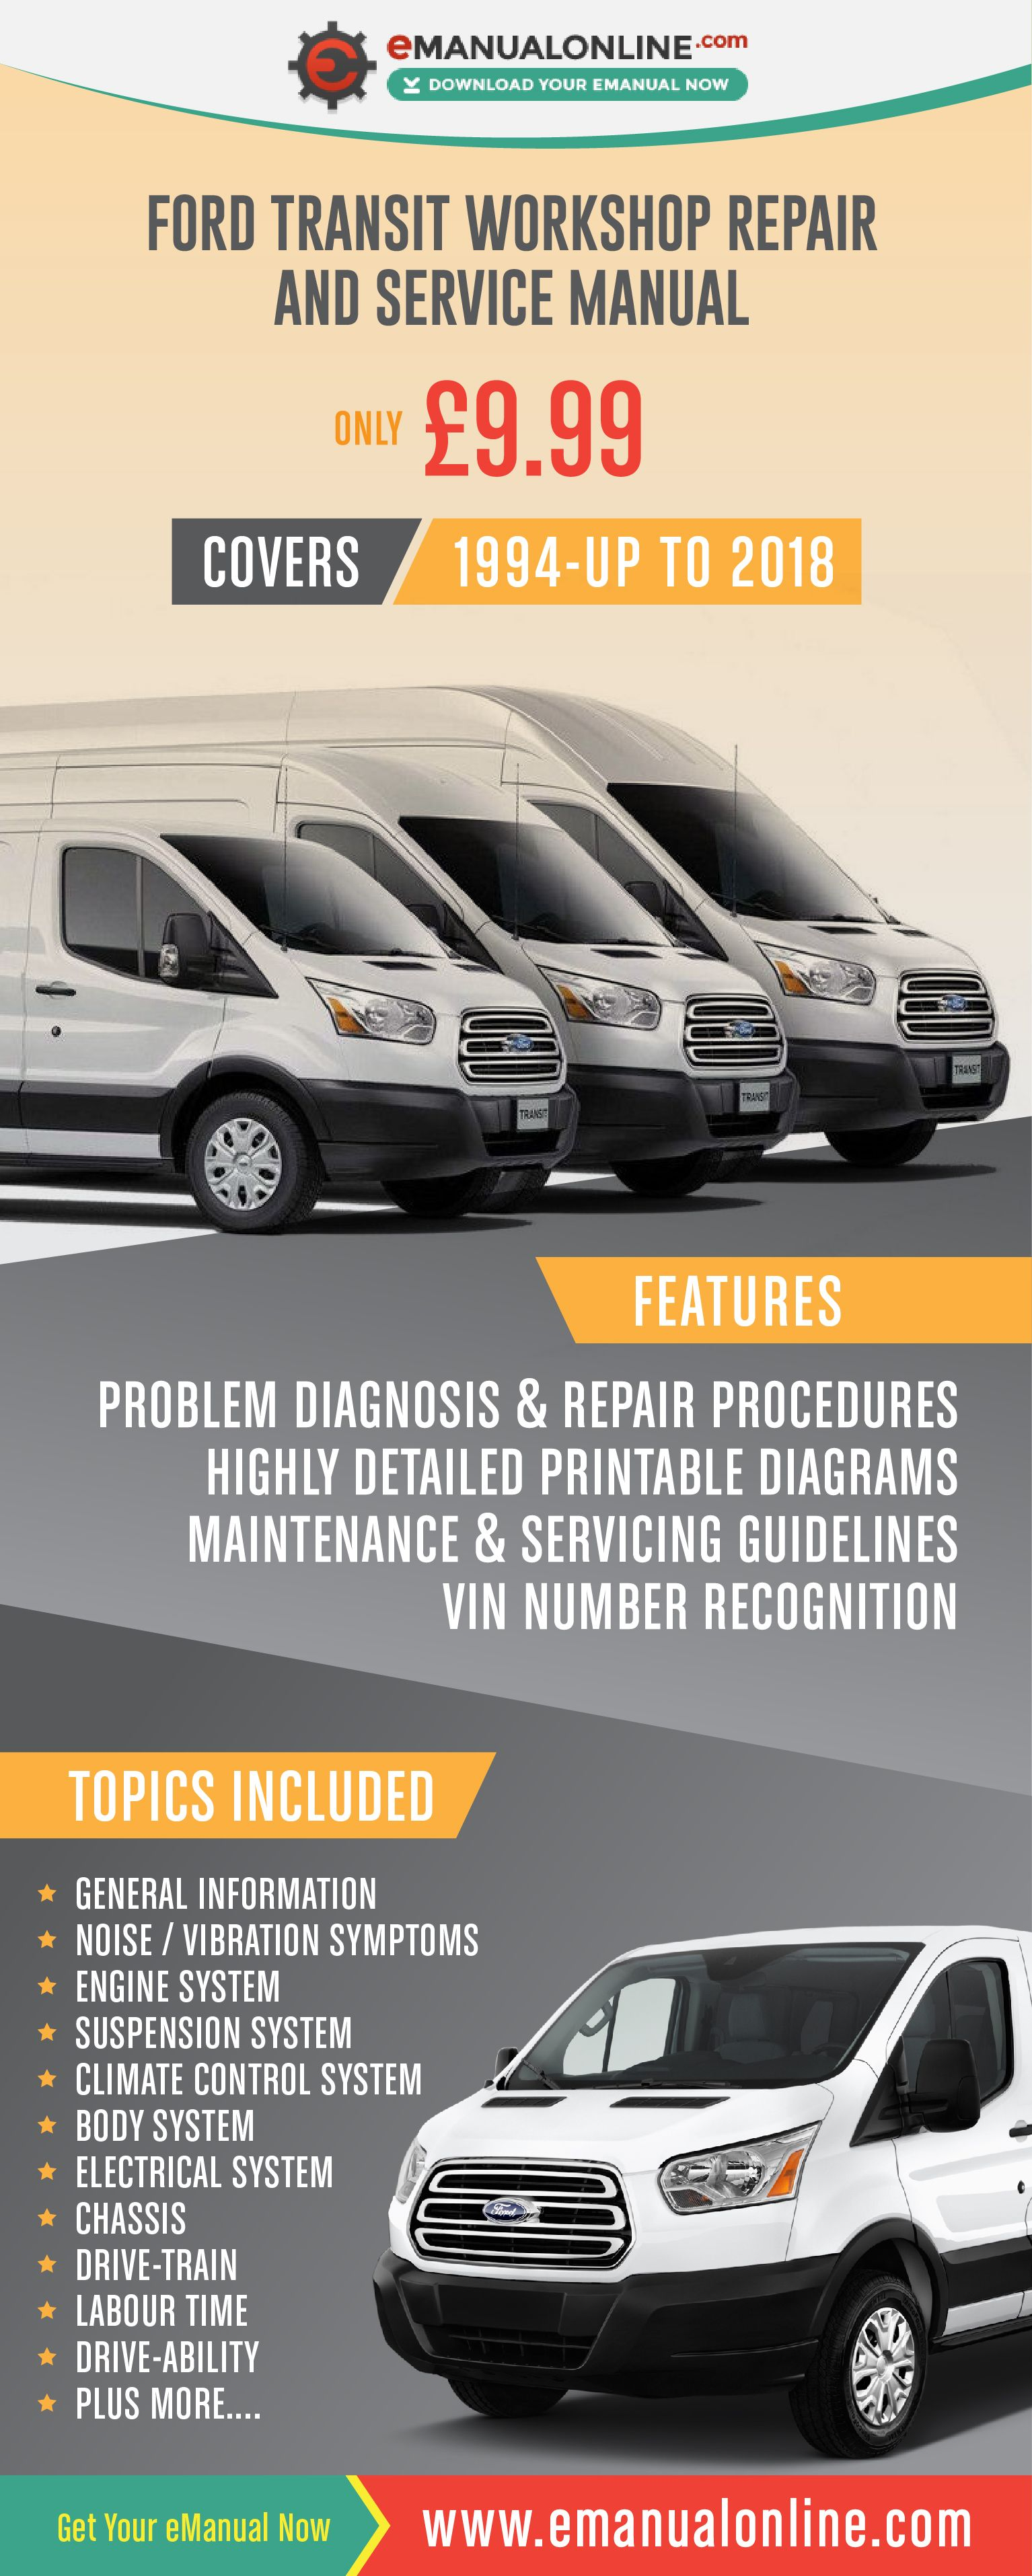 Ford Transit Workshop Repair And Service Manual This workshop manual  contains comprehensive data on repair procedures, diagnostic procedures,  servicing and ...